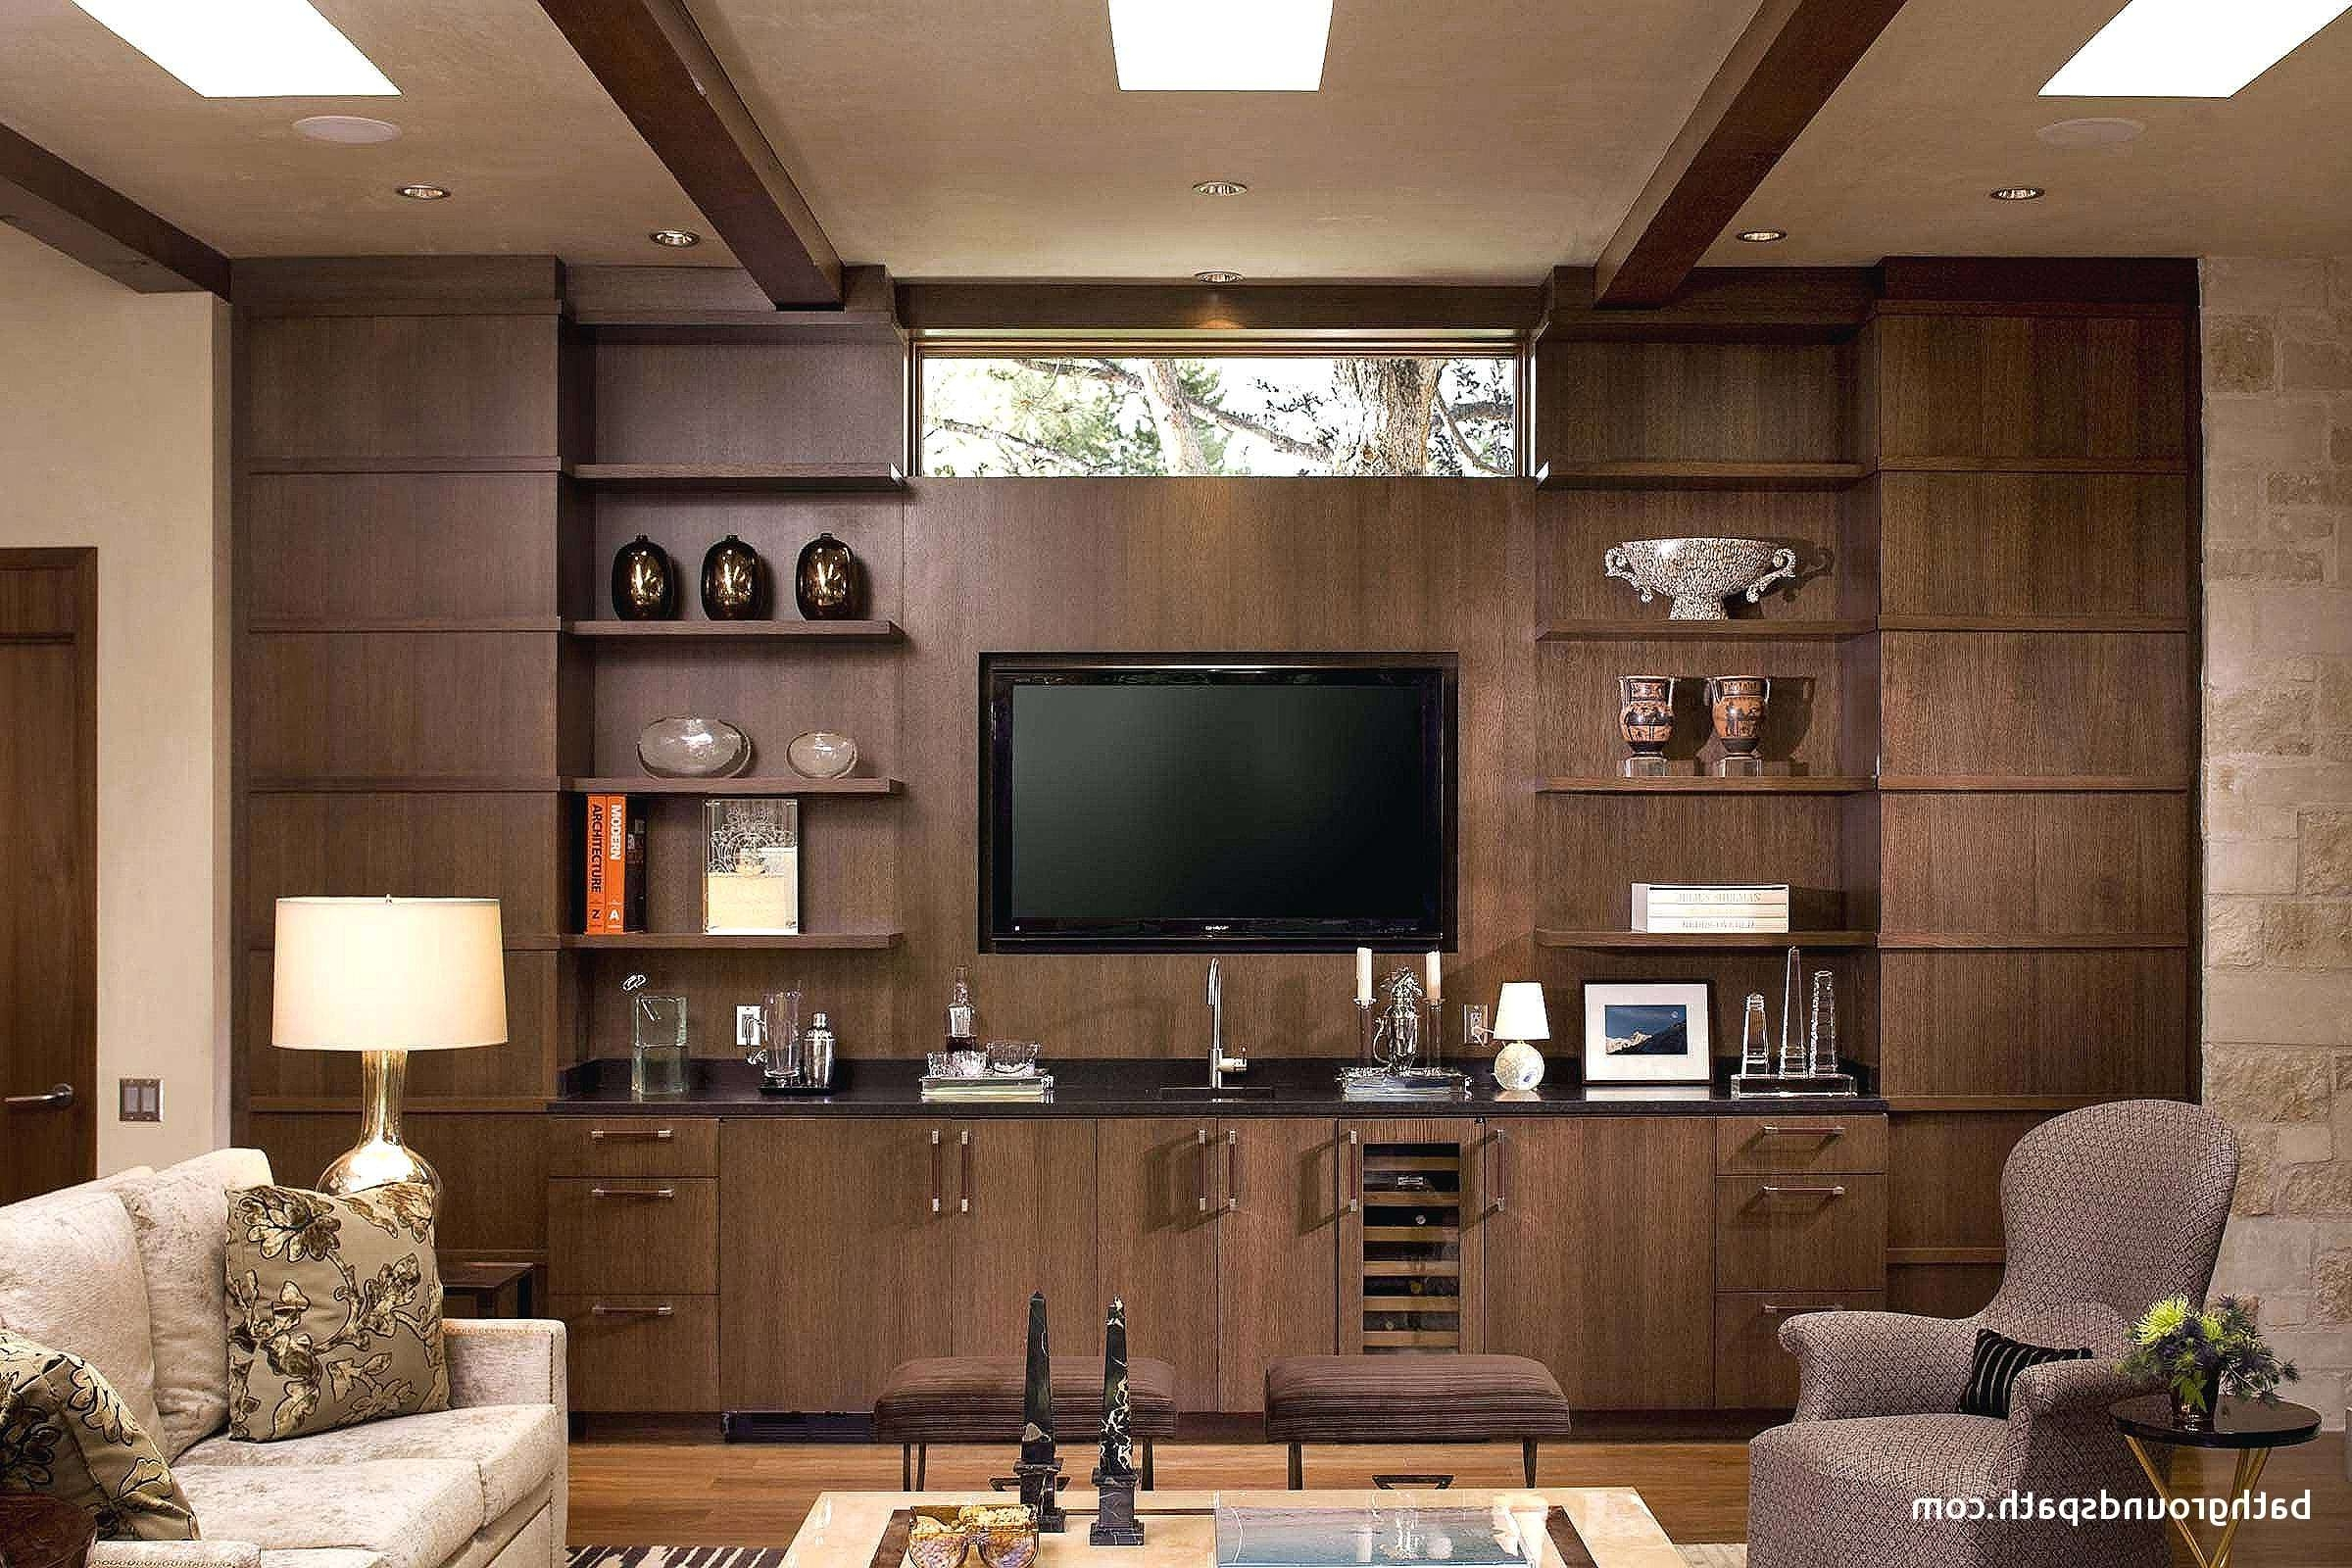 Unique Bookcase Tv Stand Combo (39 Photos) | Bathgroundspath With Regard To Bookshelf And Tv Stands (View 15 of 15)